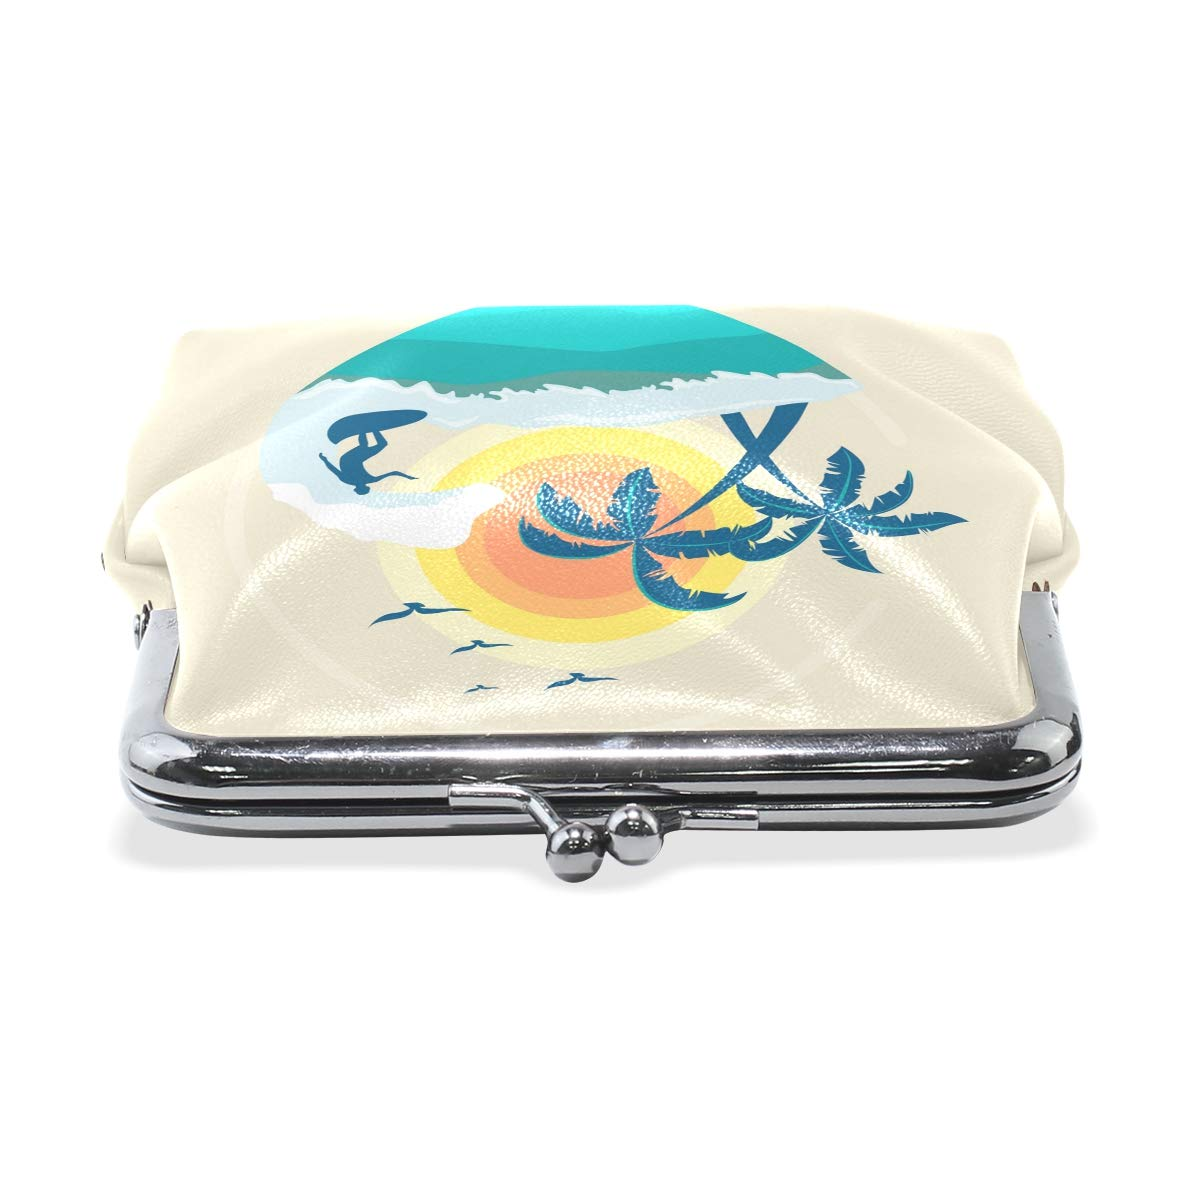 LALATOP Surf Background With Palm Trees And Sun Womens Coin Pouch Purse wallet Card Holder Clutch Handbag